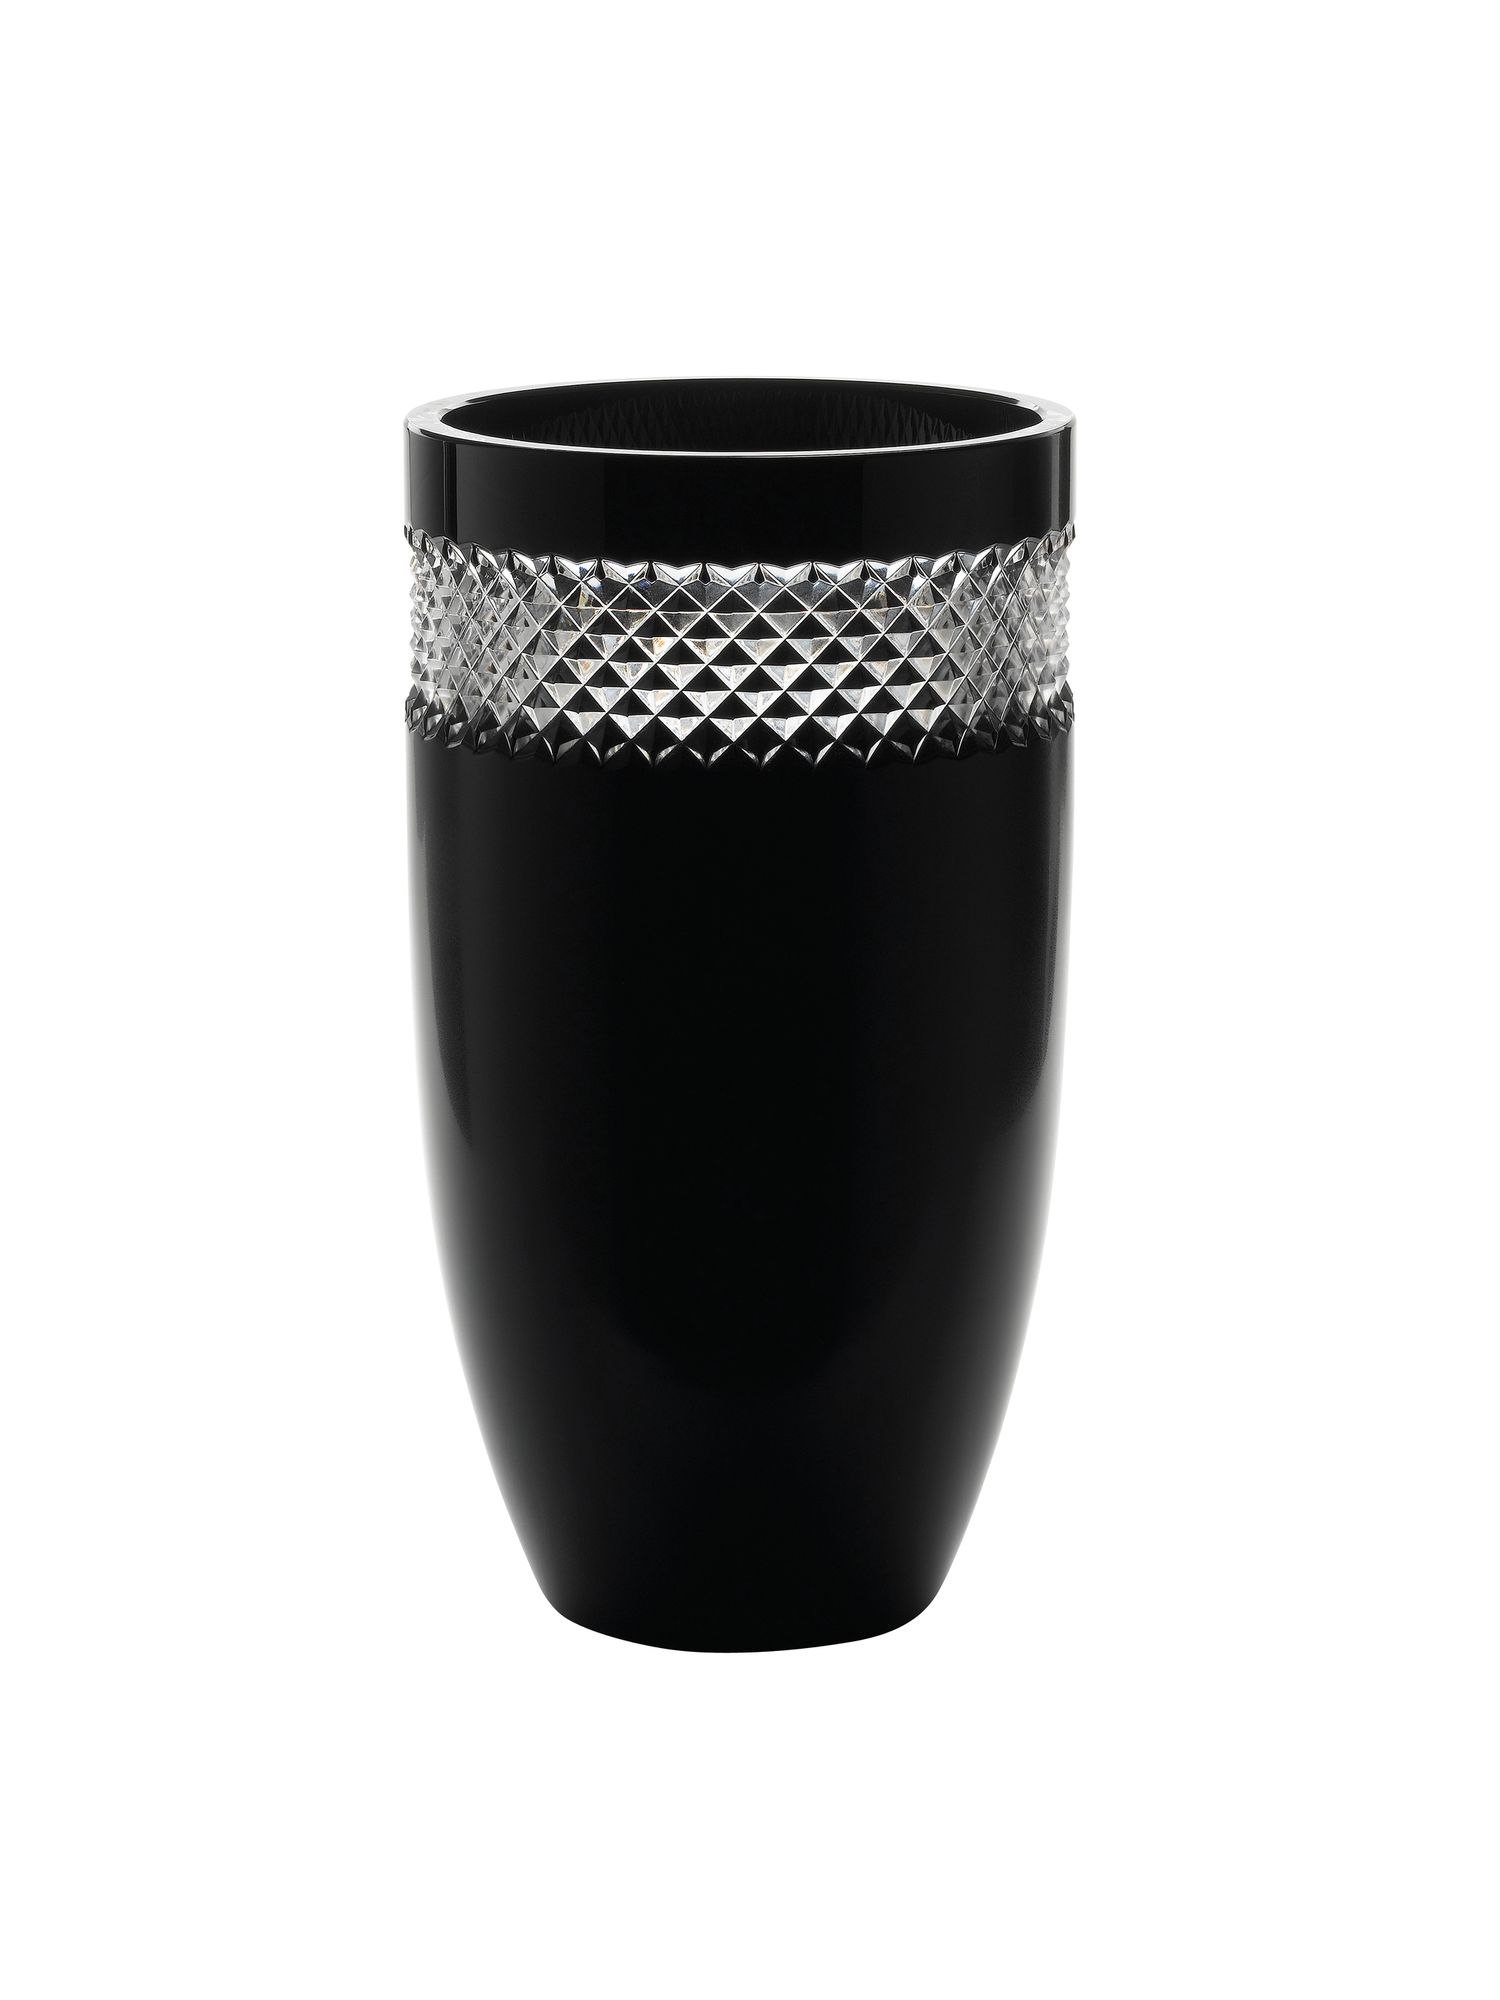 John rocha black cut  12.0 vase